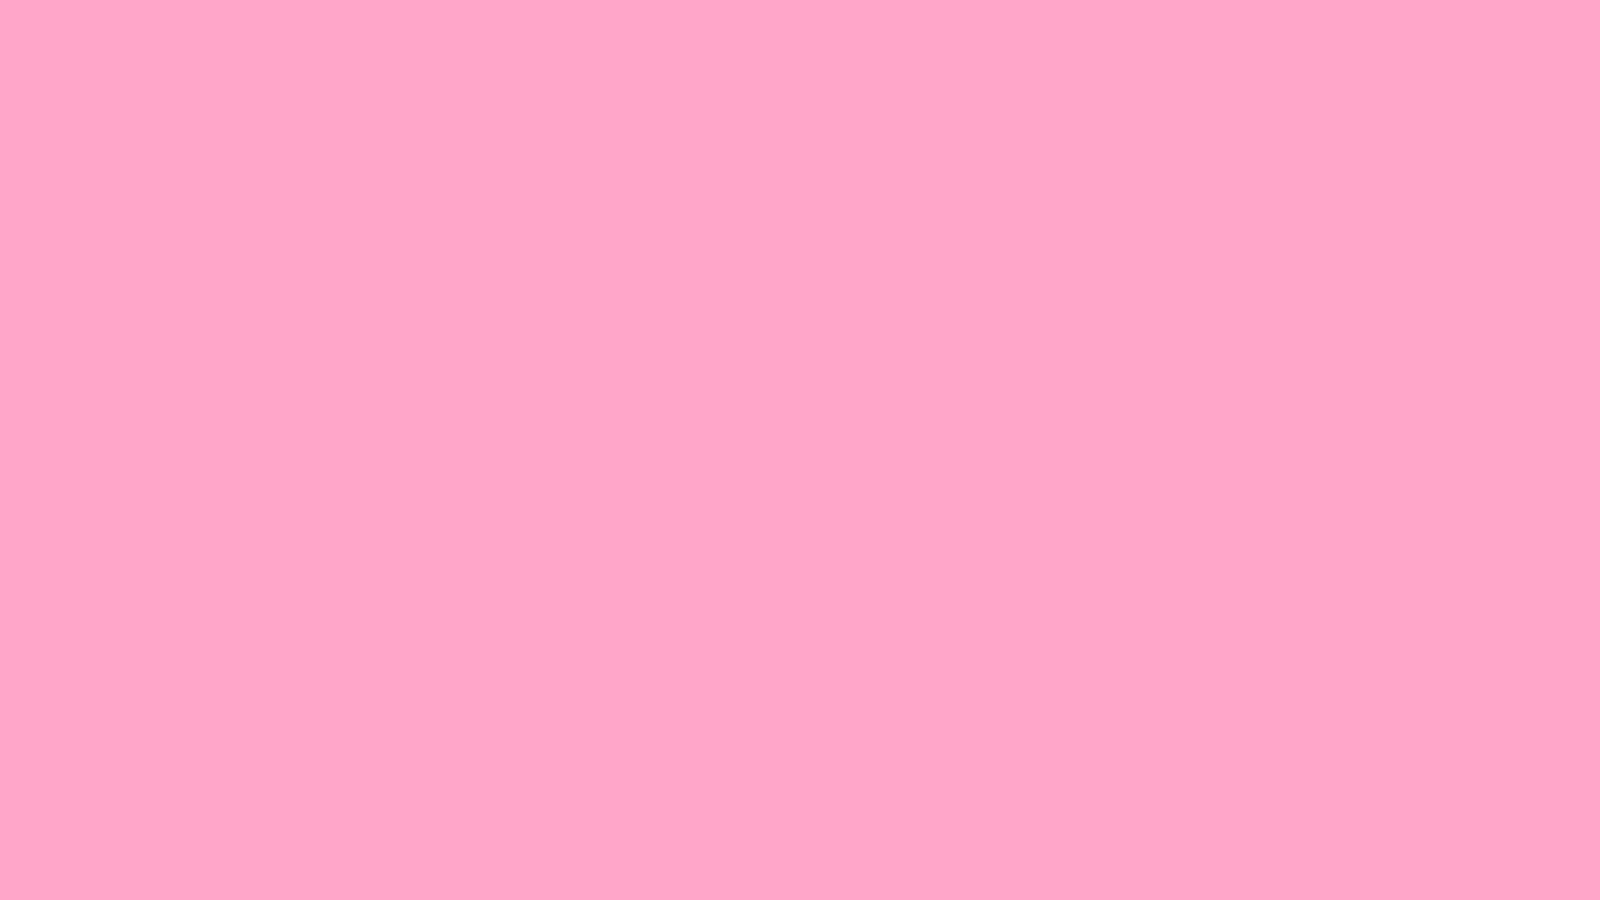 1600x900 Carnation Pink Solid Color Background